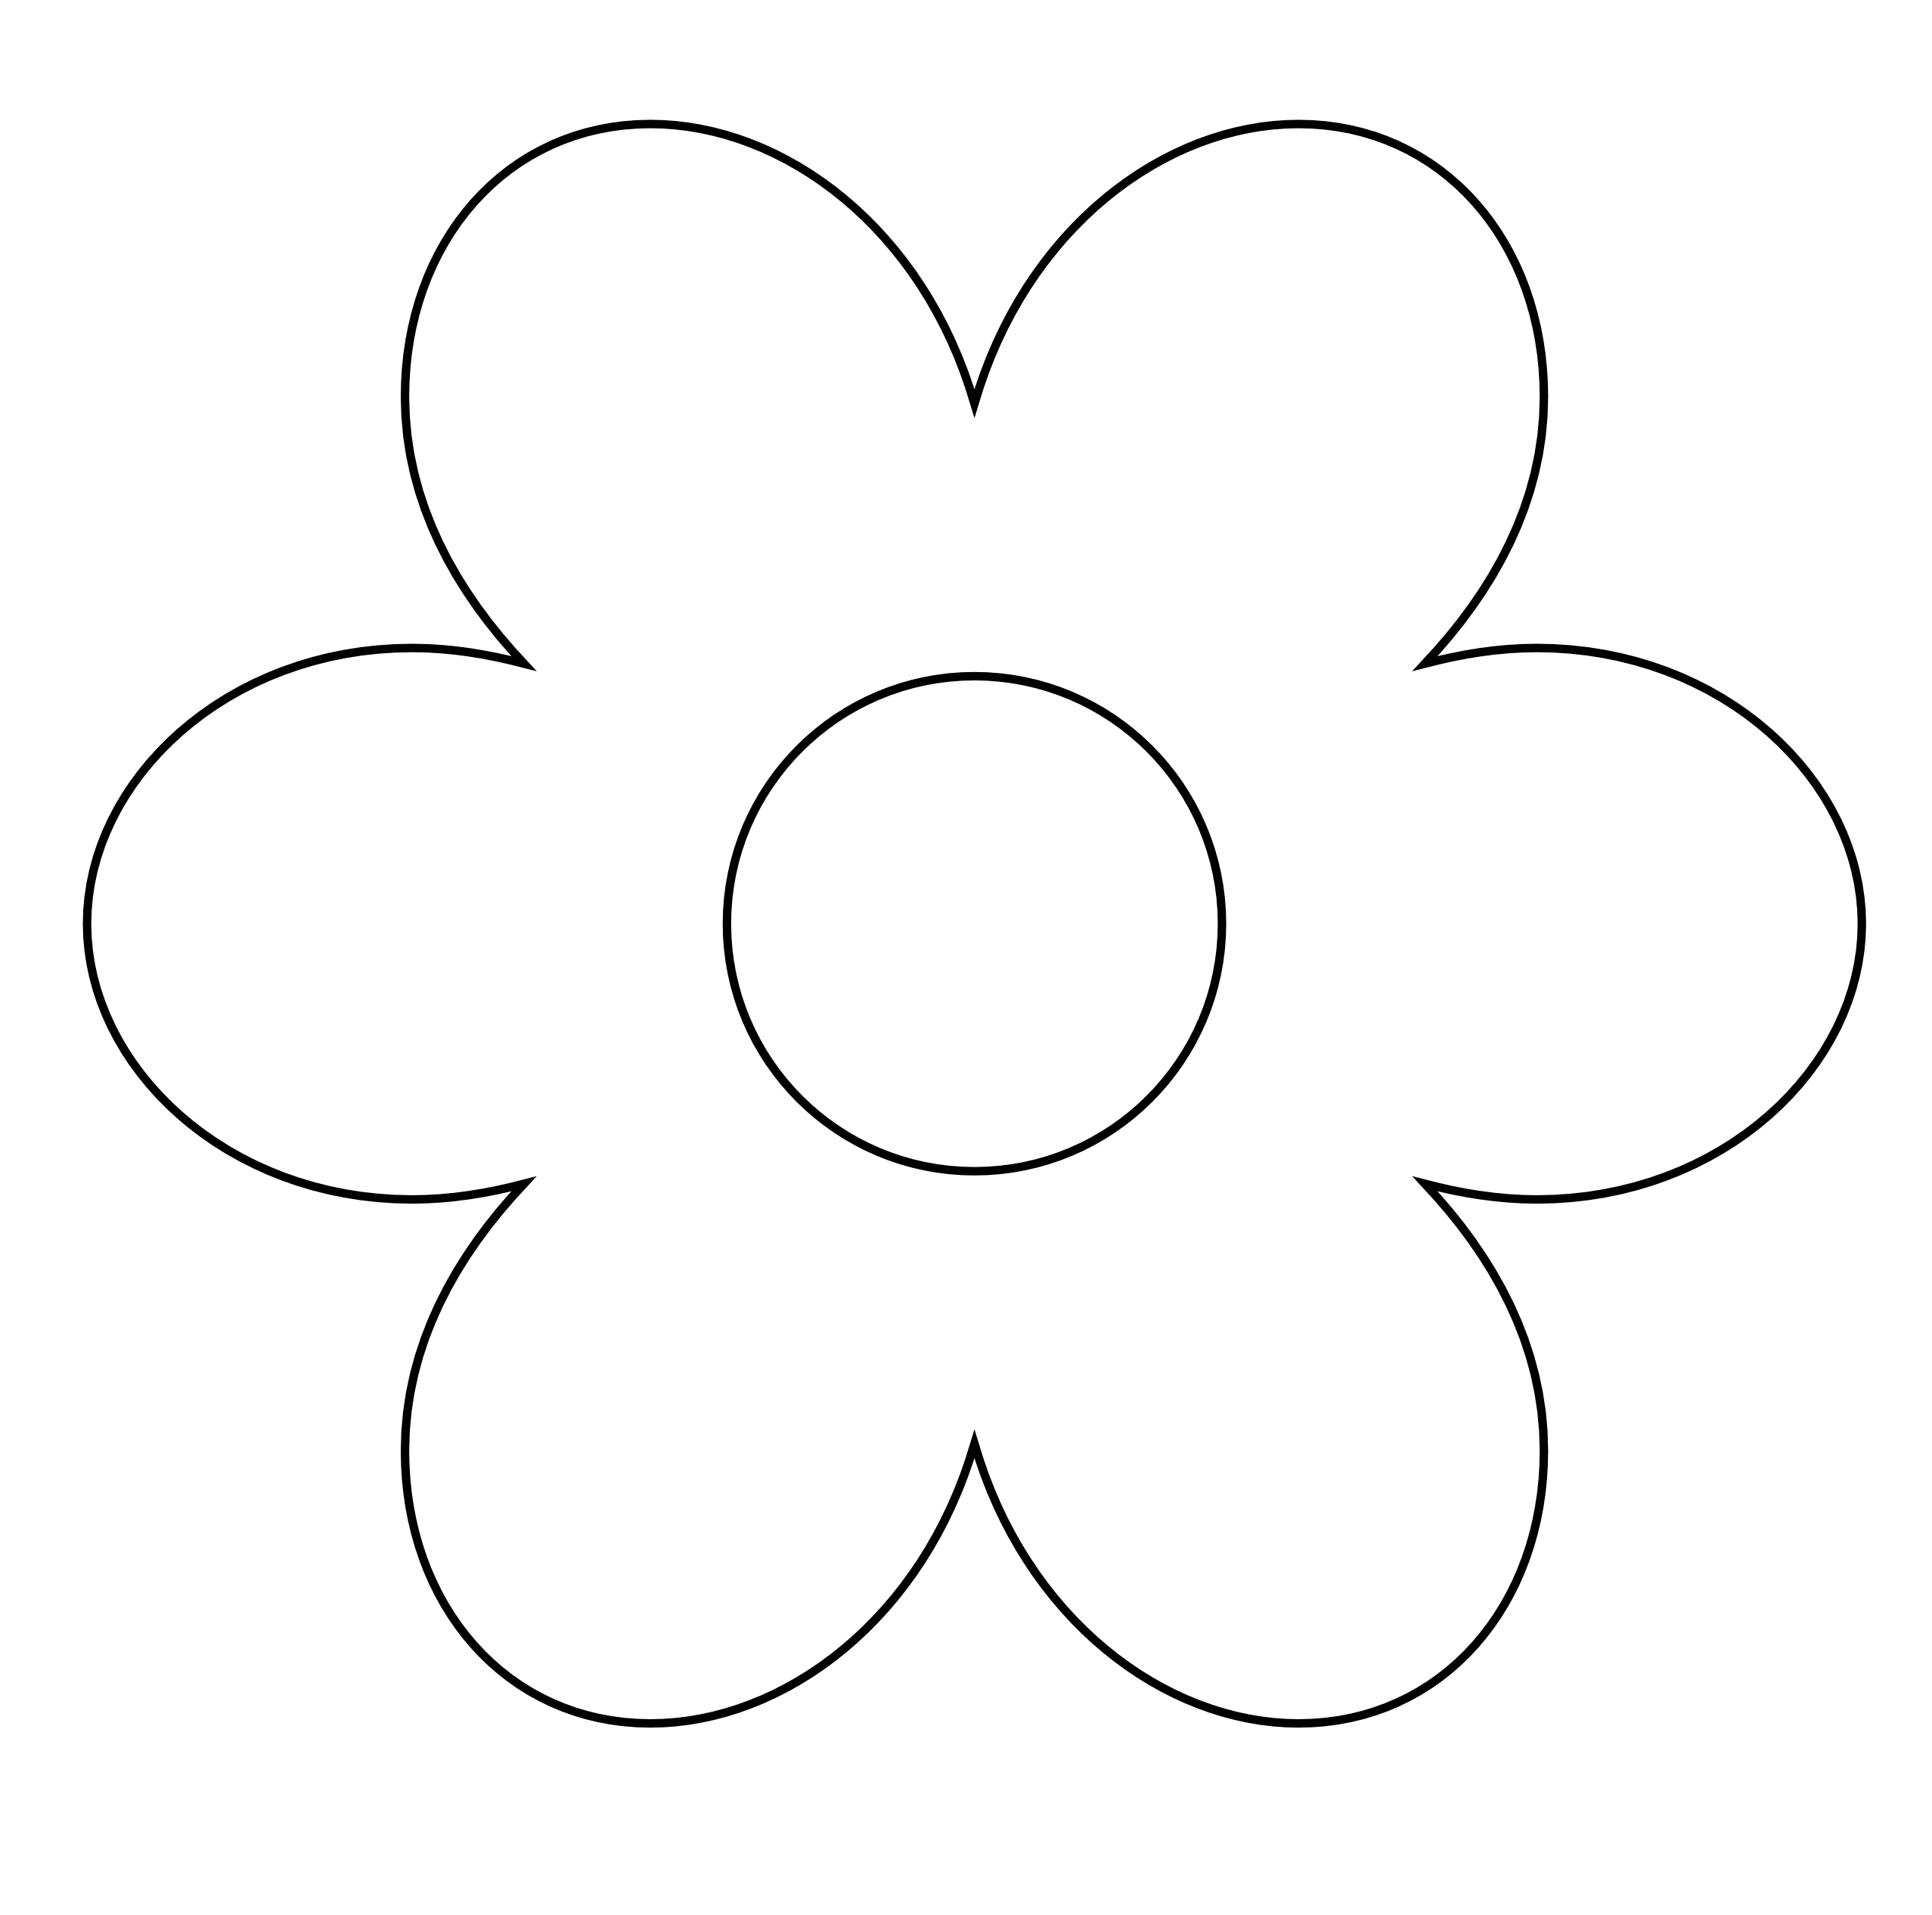 Flower clipart bw graphic free stock White flower clipart png - ClipartFest graphic free stock